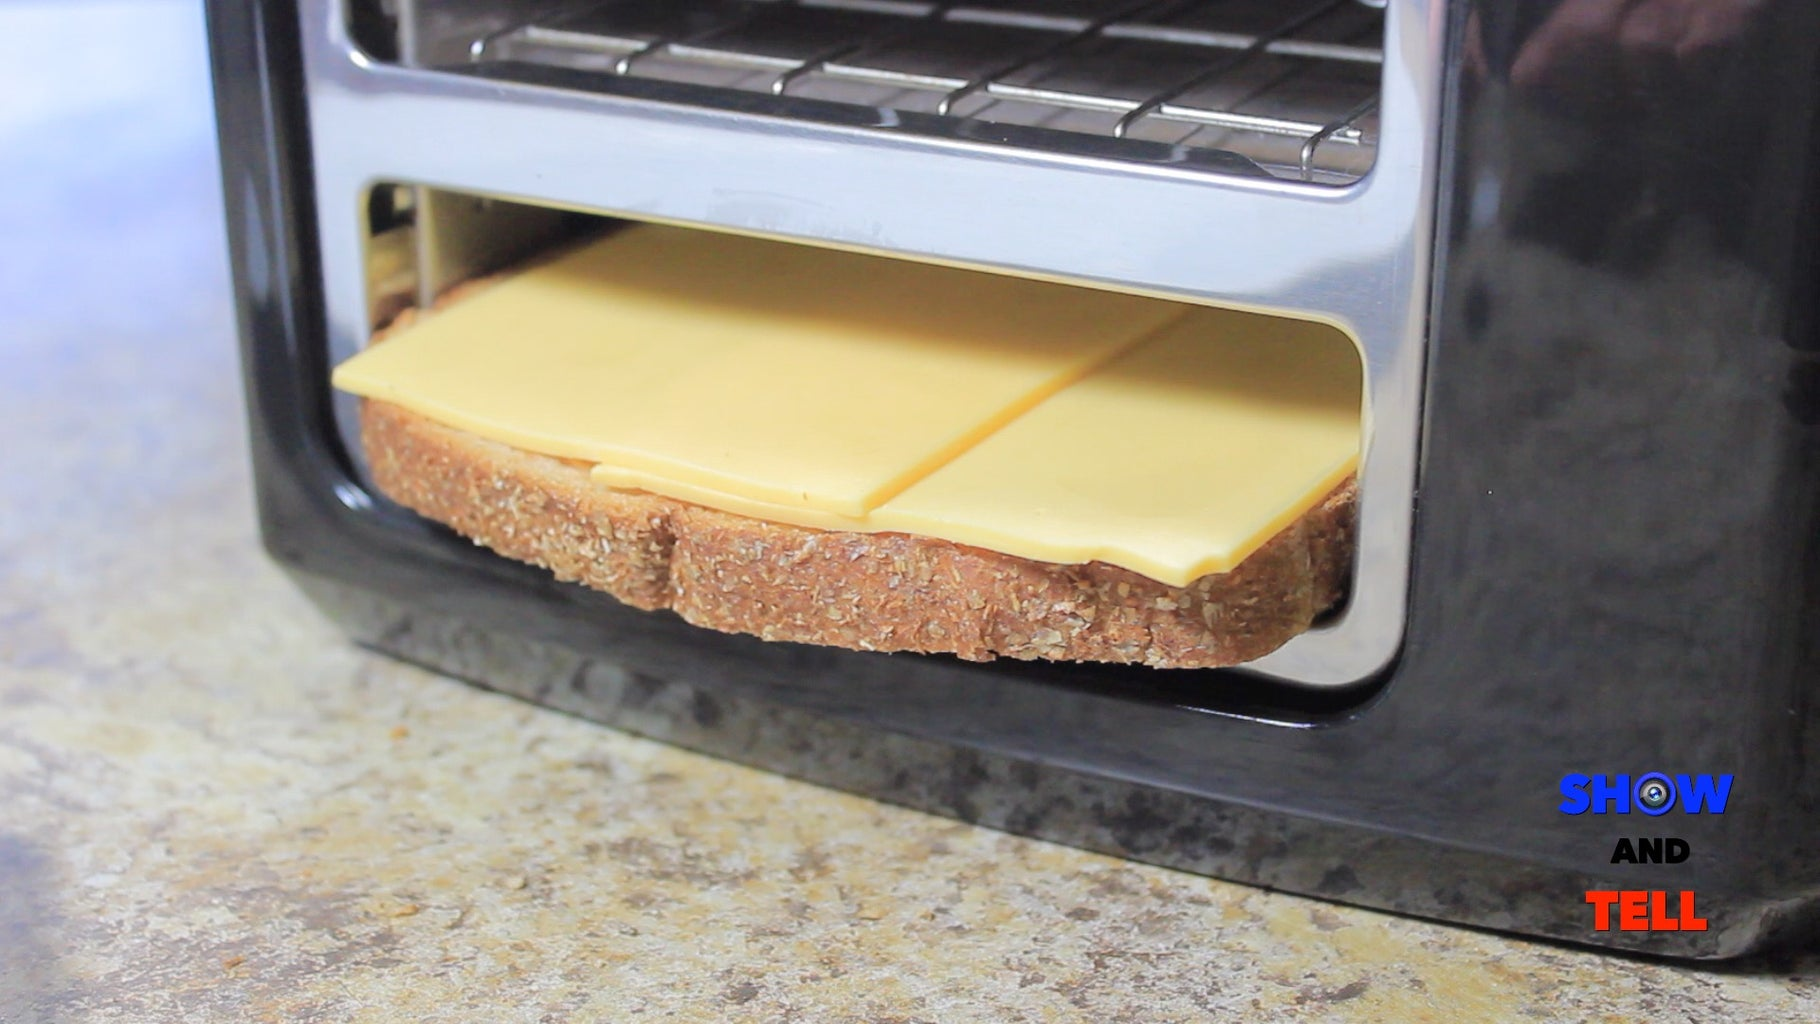 Put the Slices in the Toaster.